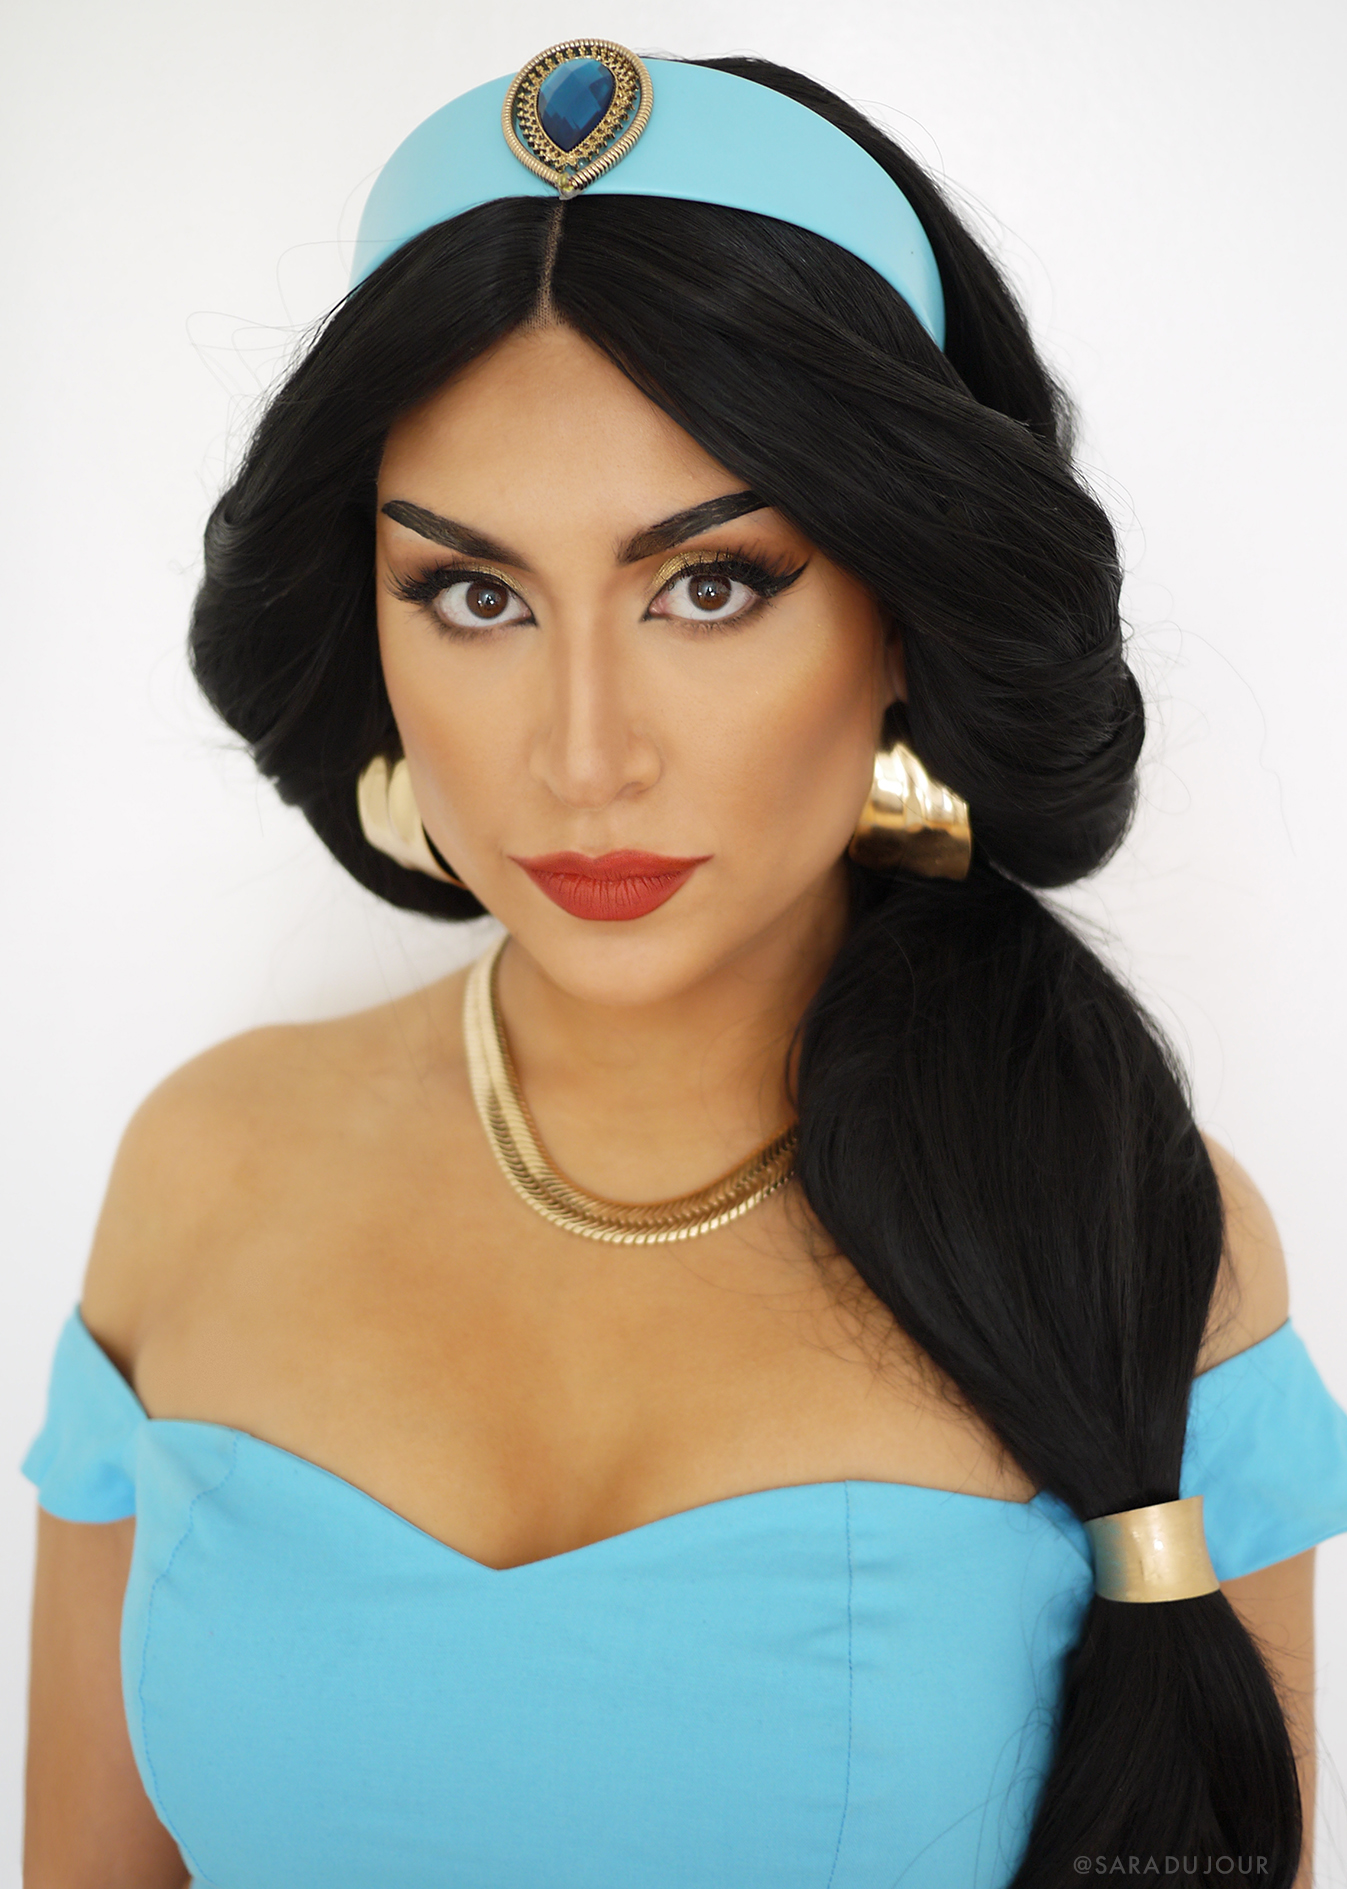 Princess Jasmine Cosplay Makeup + Costume | Sara du Jour